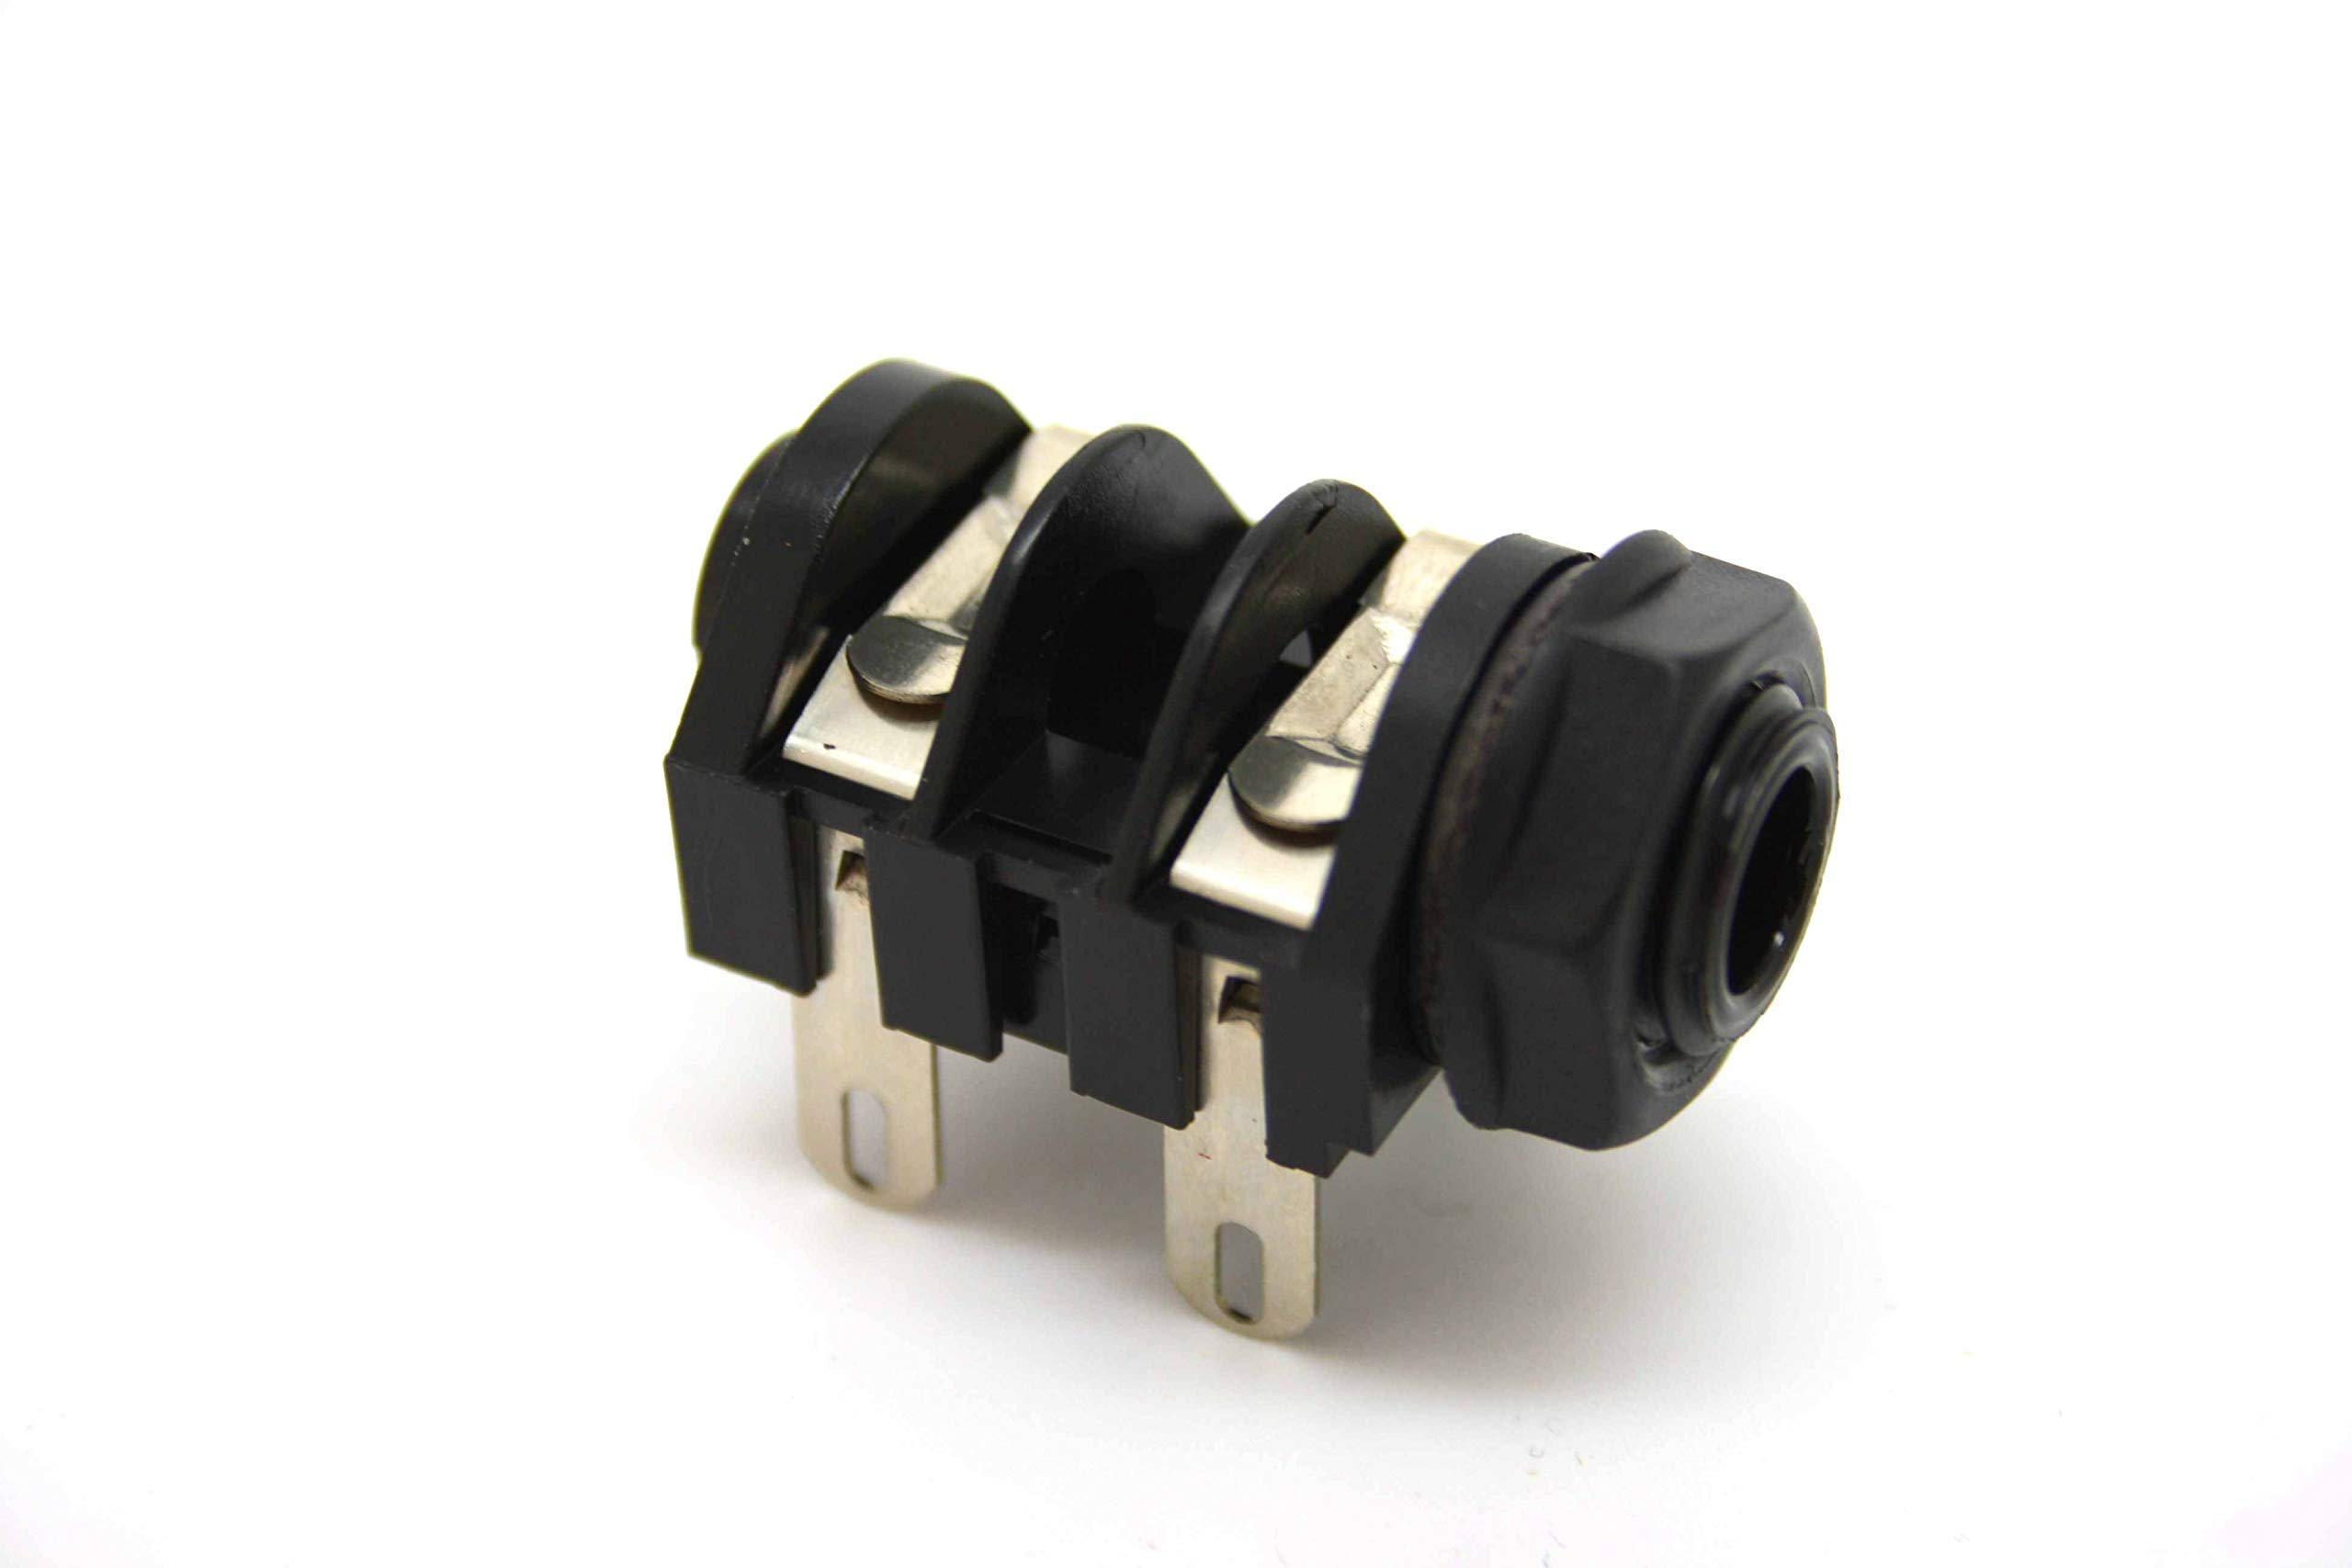 Jack - Mono Input, Black Plastic Nut, Cliff UK, Replacement for Marshall